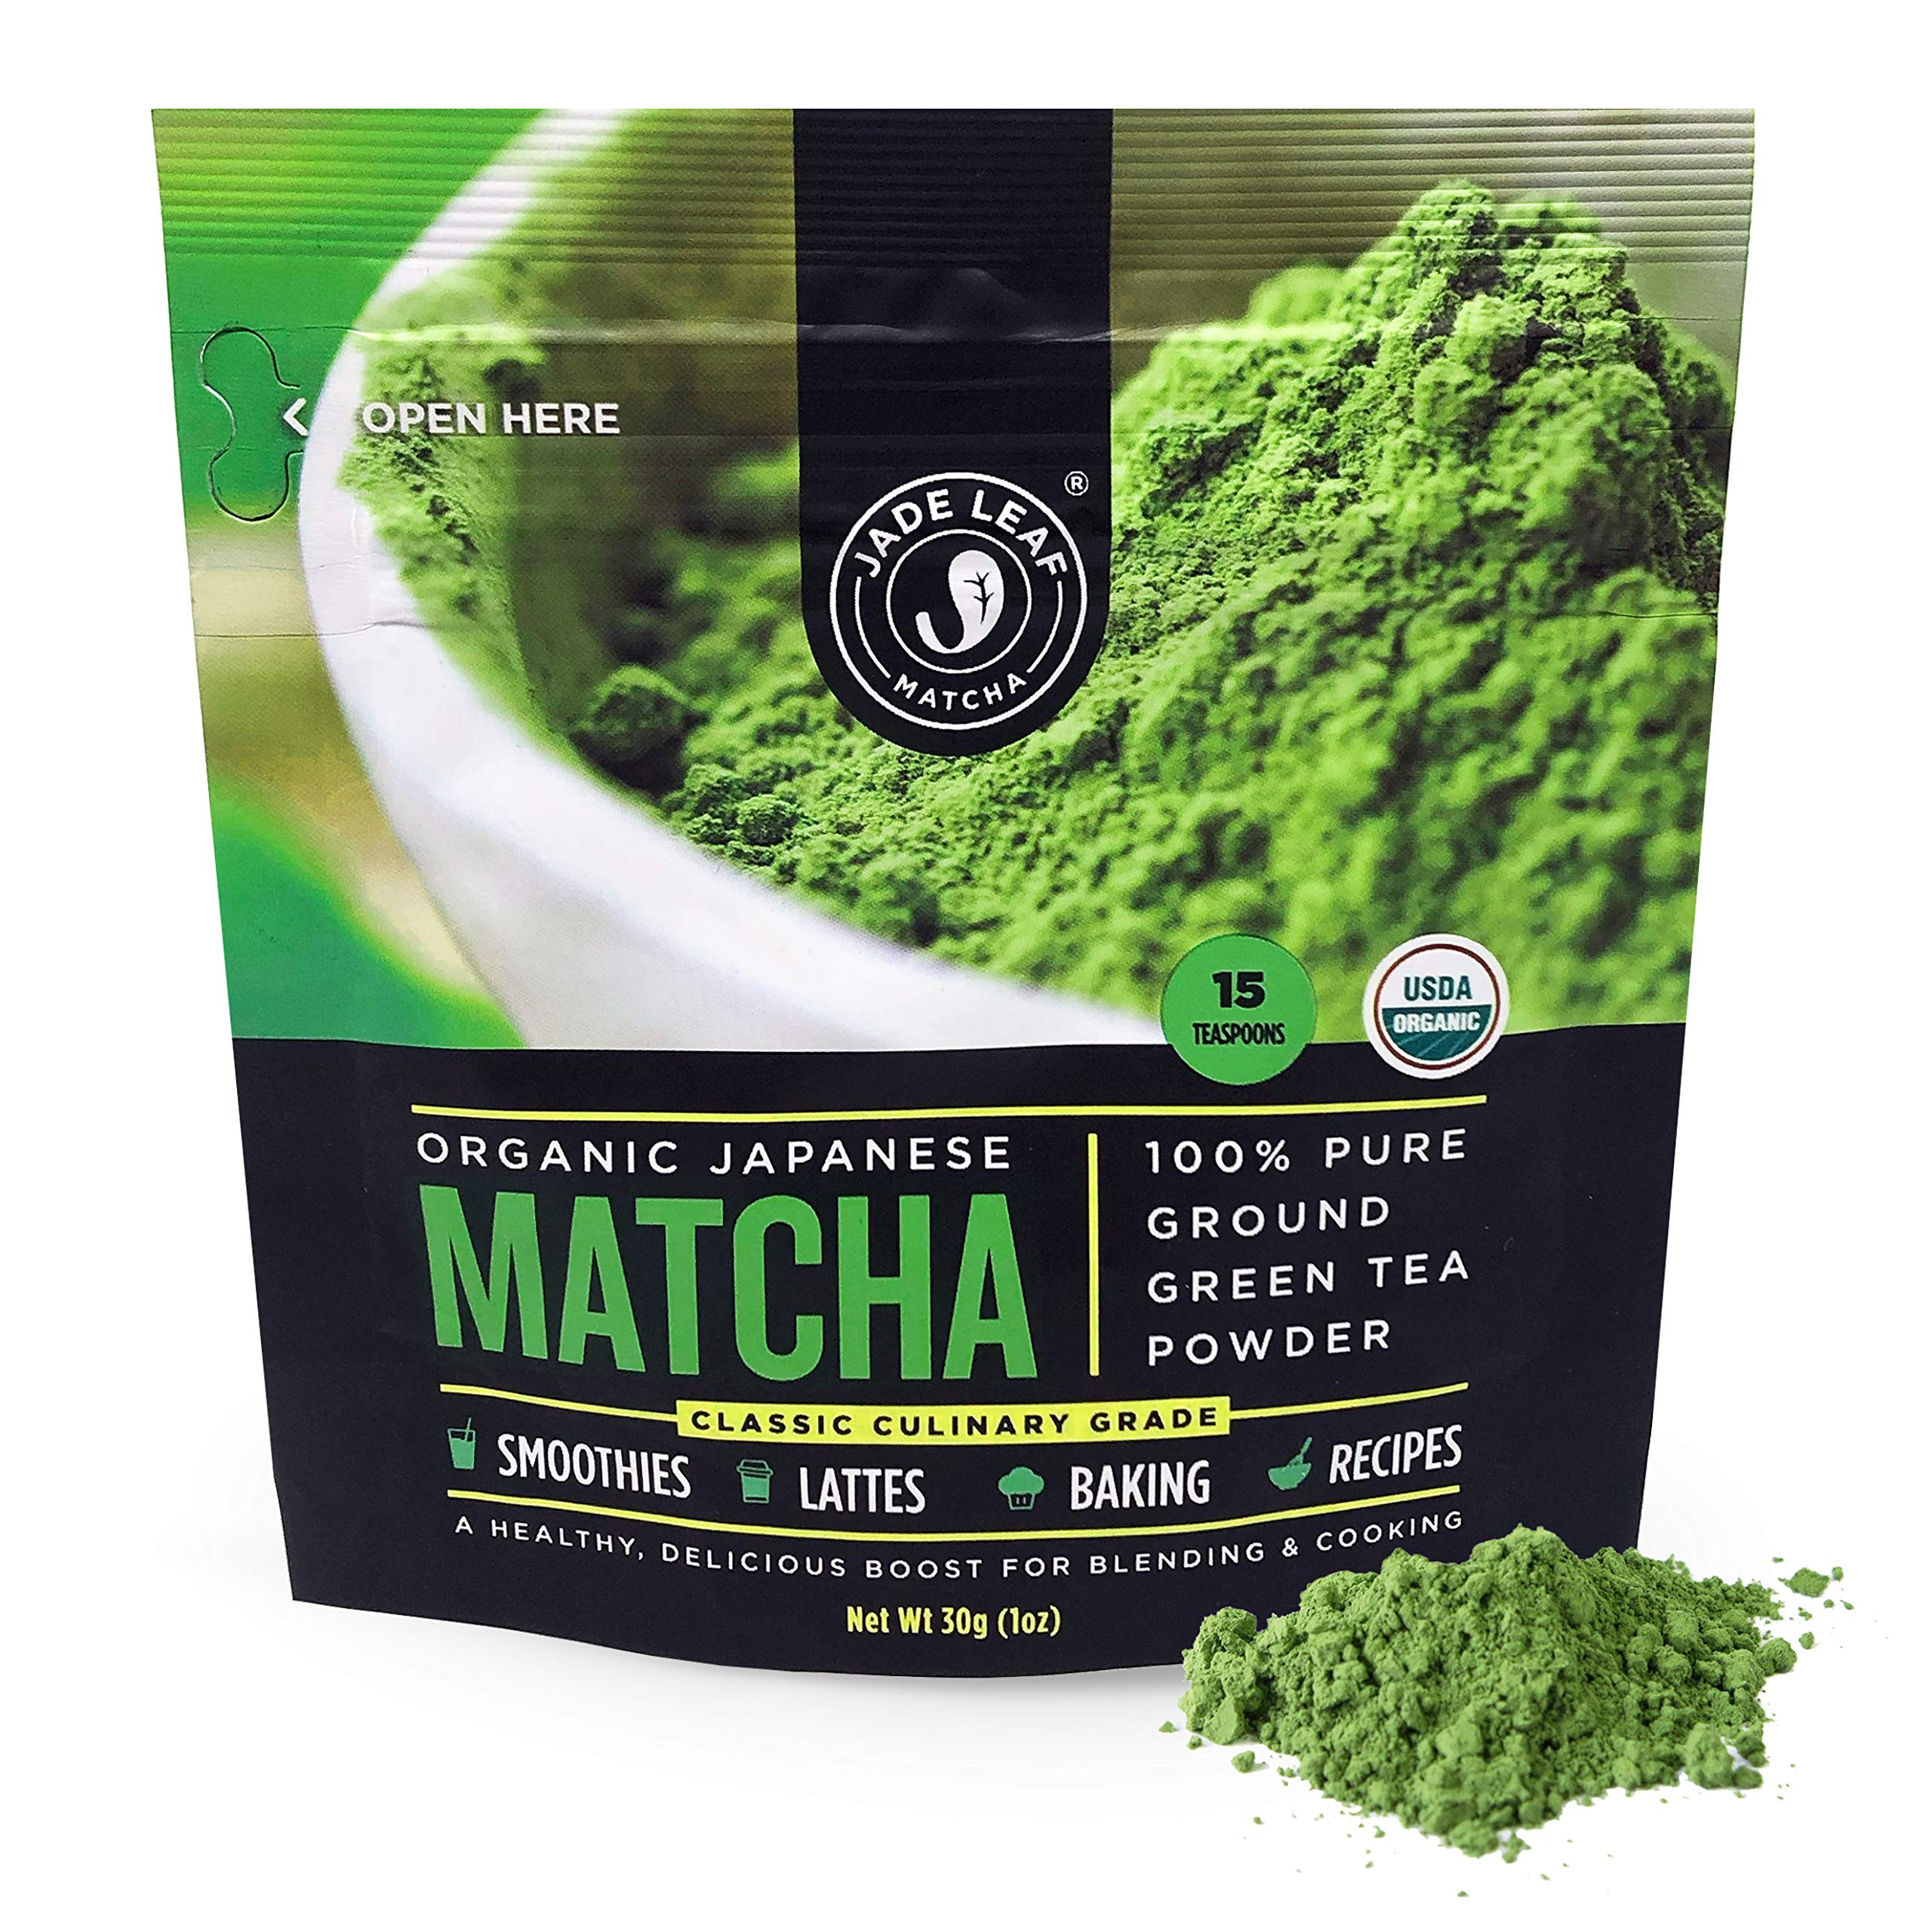 Jade Leaf Matcha Green Tea Powder - USDA Organic, Authentic Japanese Origin - Classic Culinary Grade (Smoothies, Lattes, Baking, Recipes) - Antioxidants, Energy [30g Starter Size] by Jade Leaf Matcha